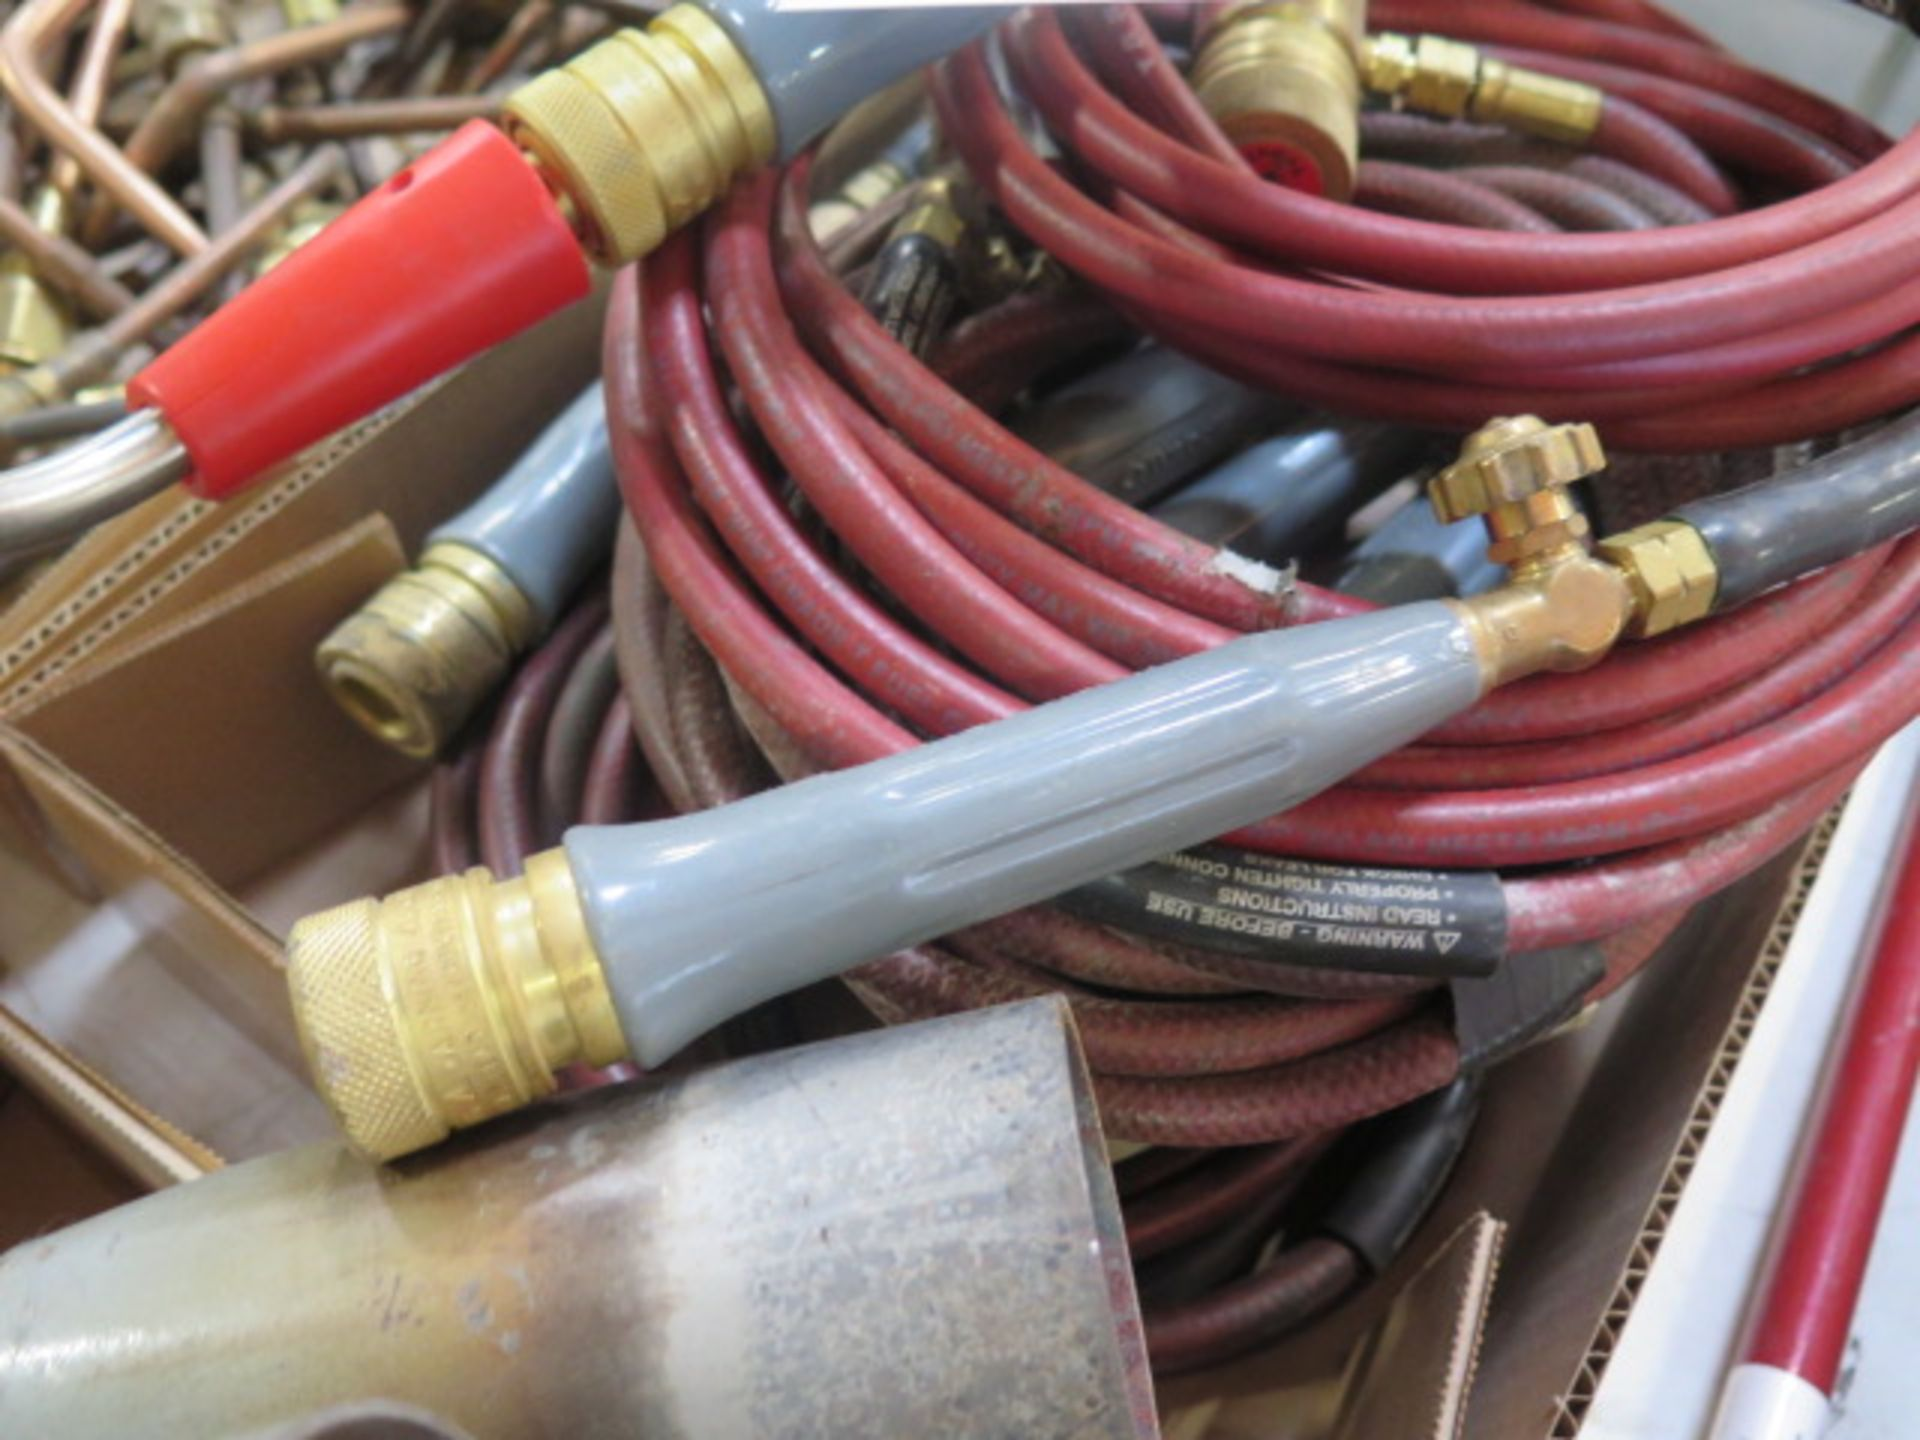 Heating Torches (SOLD AS-IS - NO WARRANTY) - Image 4 of 5